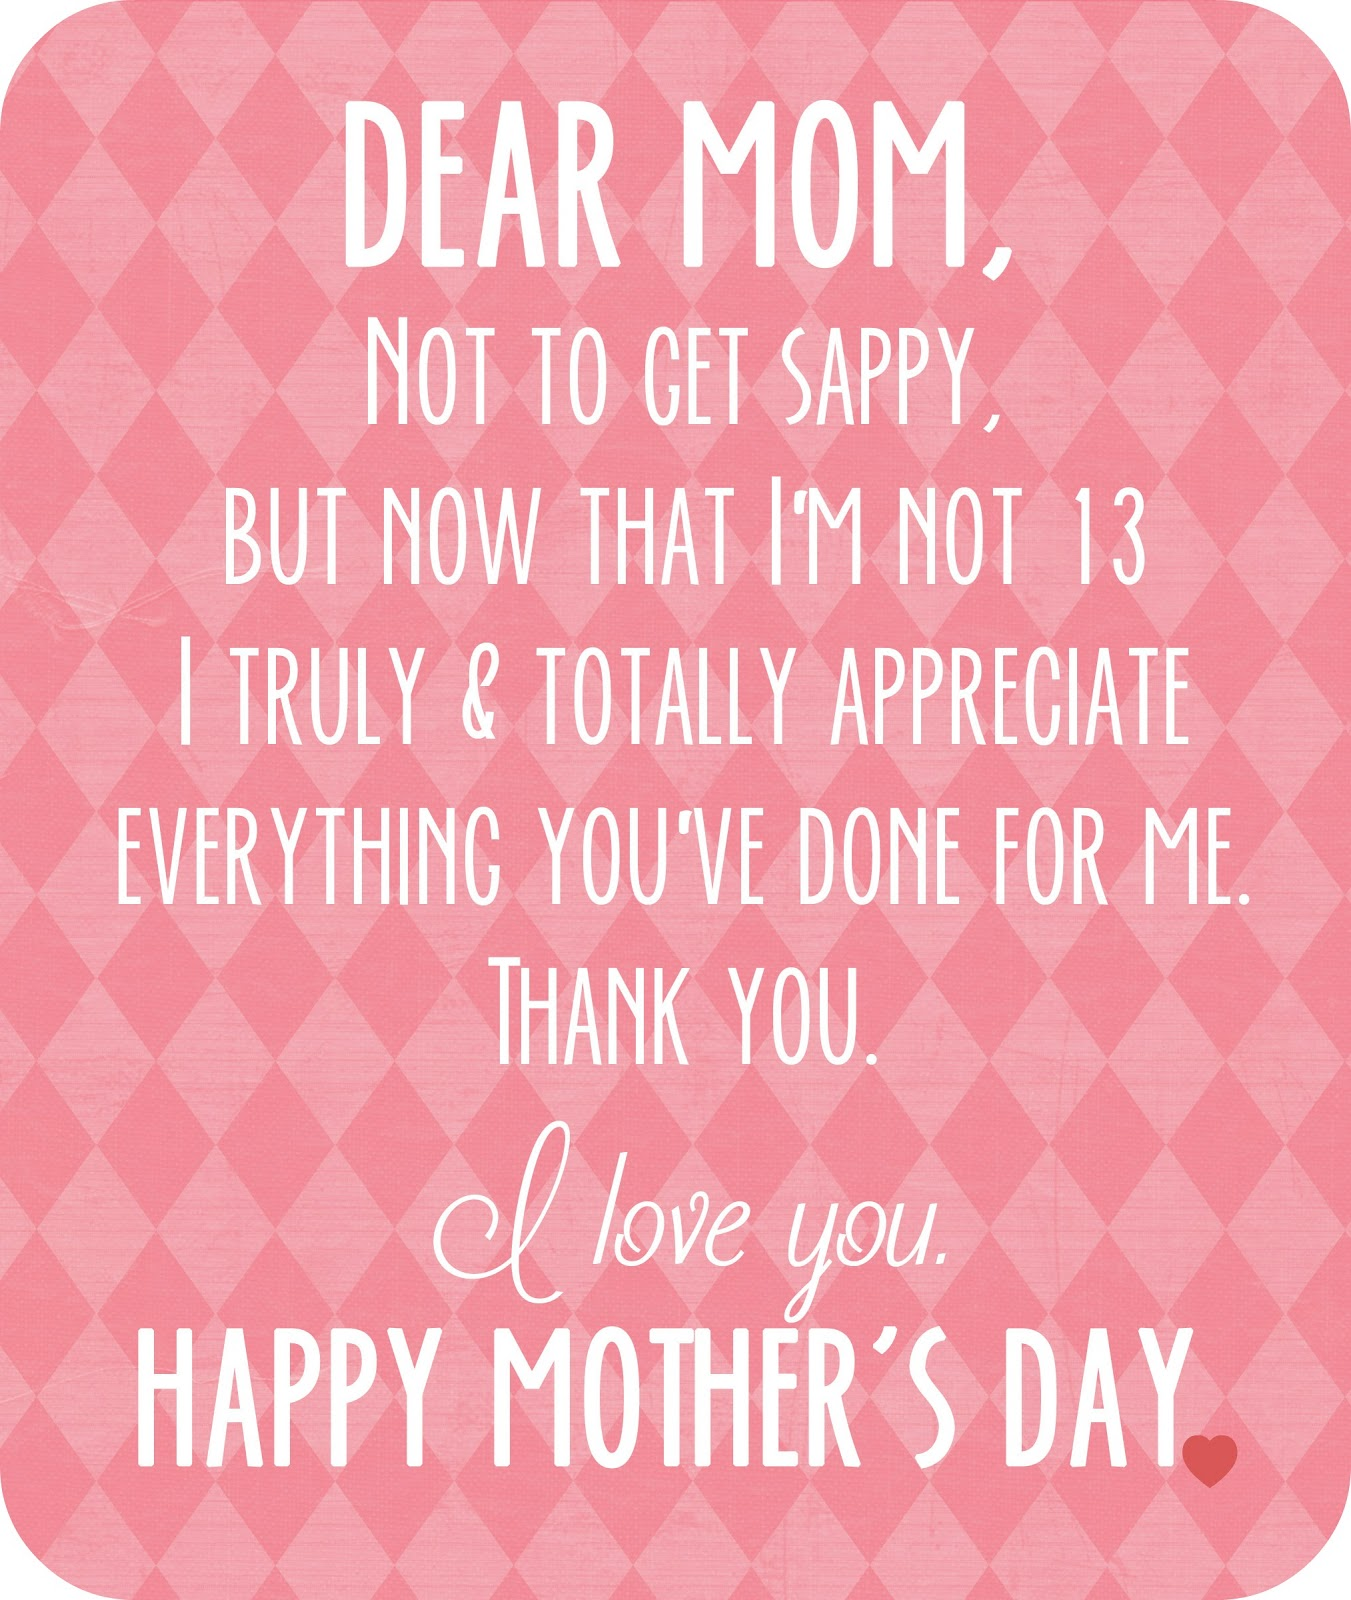 I Love You Mom Quotes And Images : crazyloucreations.blog...crazylou: Happy Mothers Day! {Free Printable